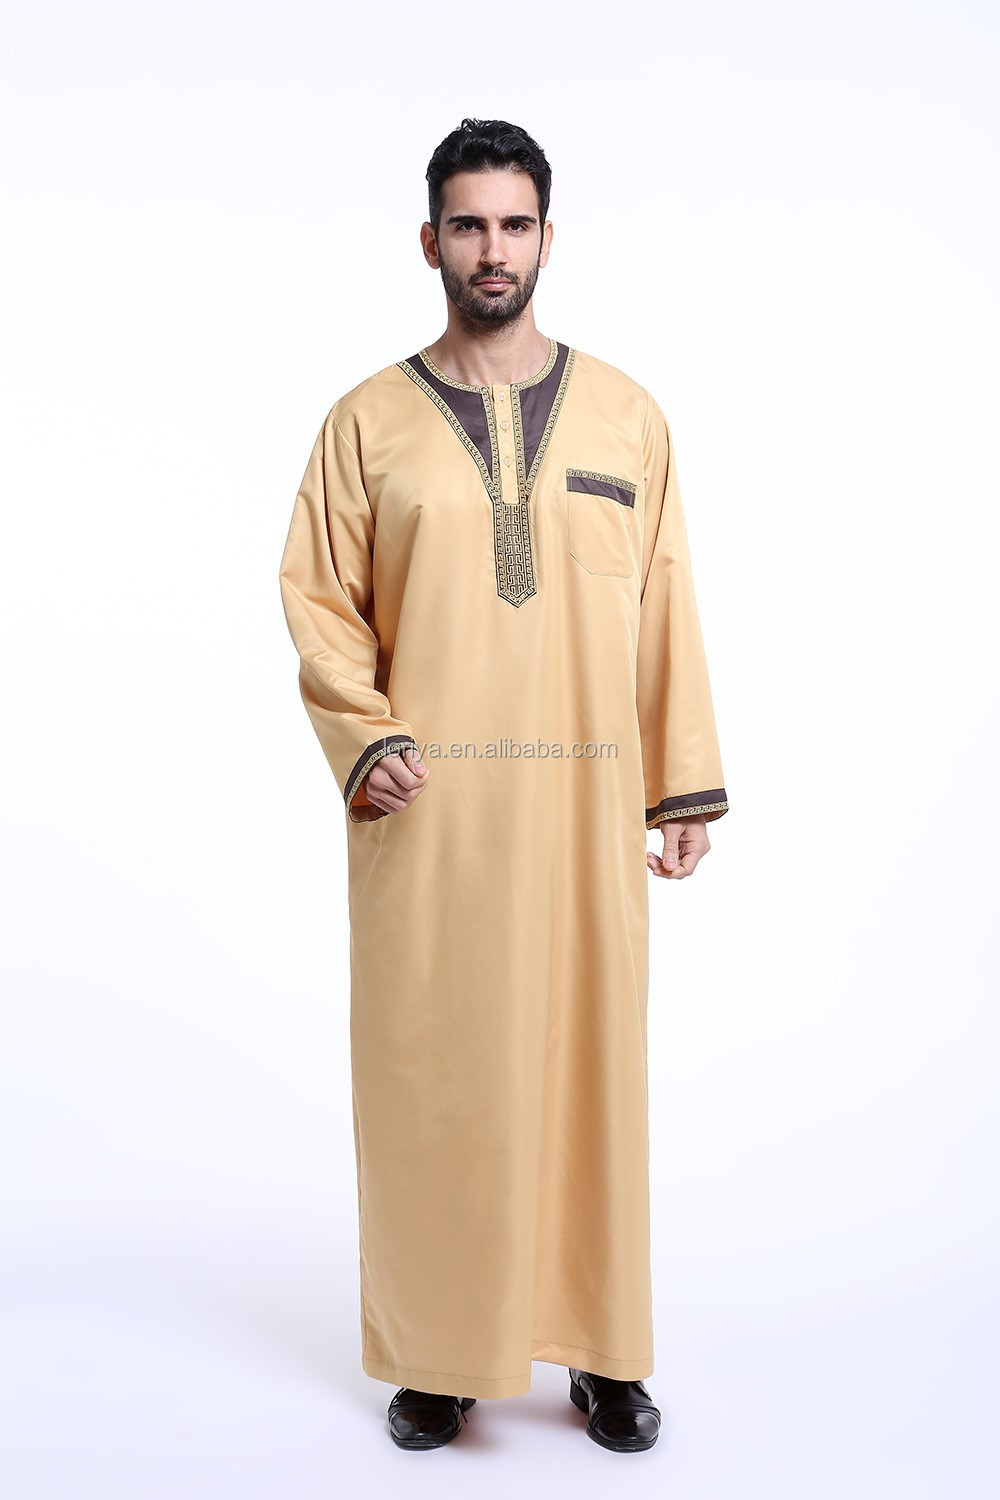 New fashion design abaya high quality kaftan muslim designer jubah islamic men's abaya